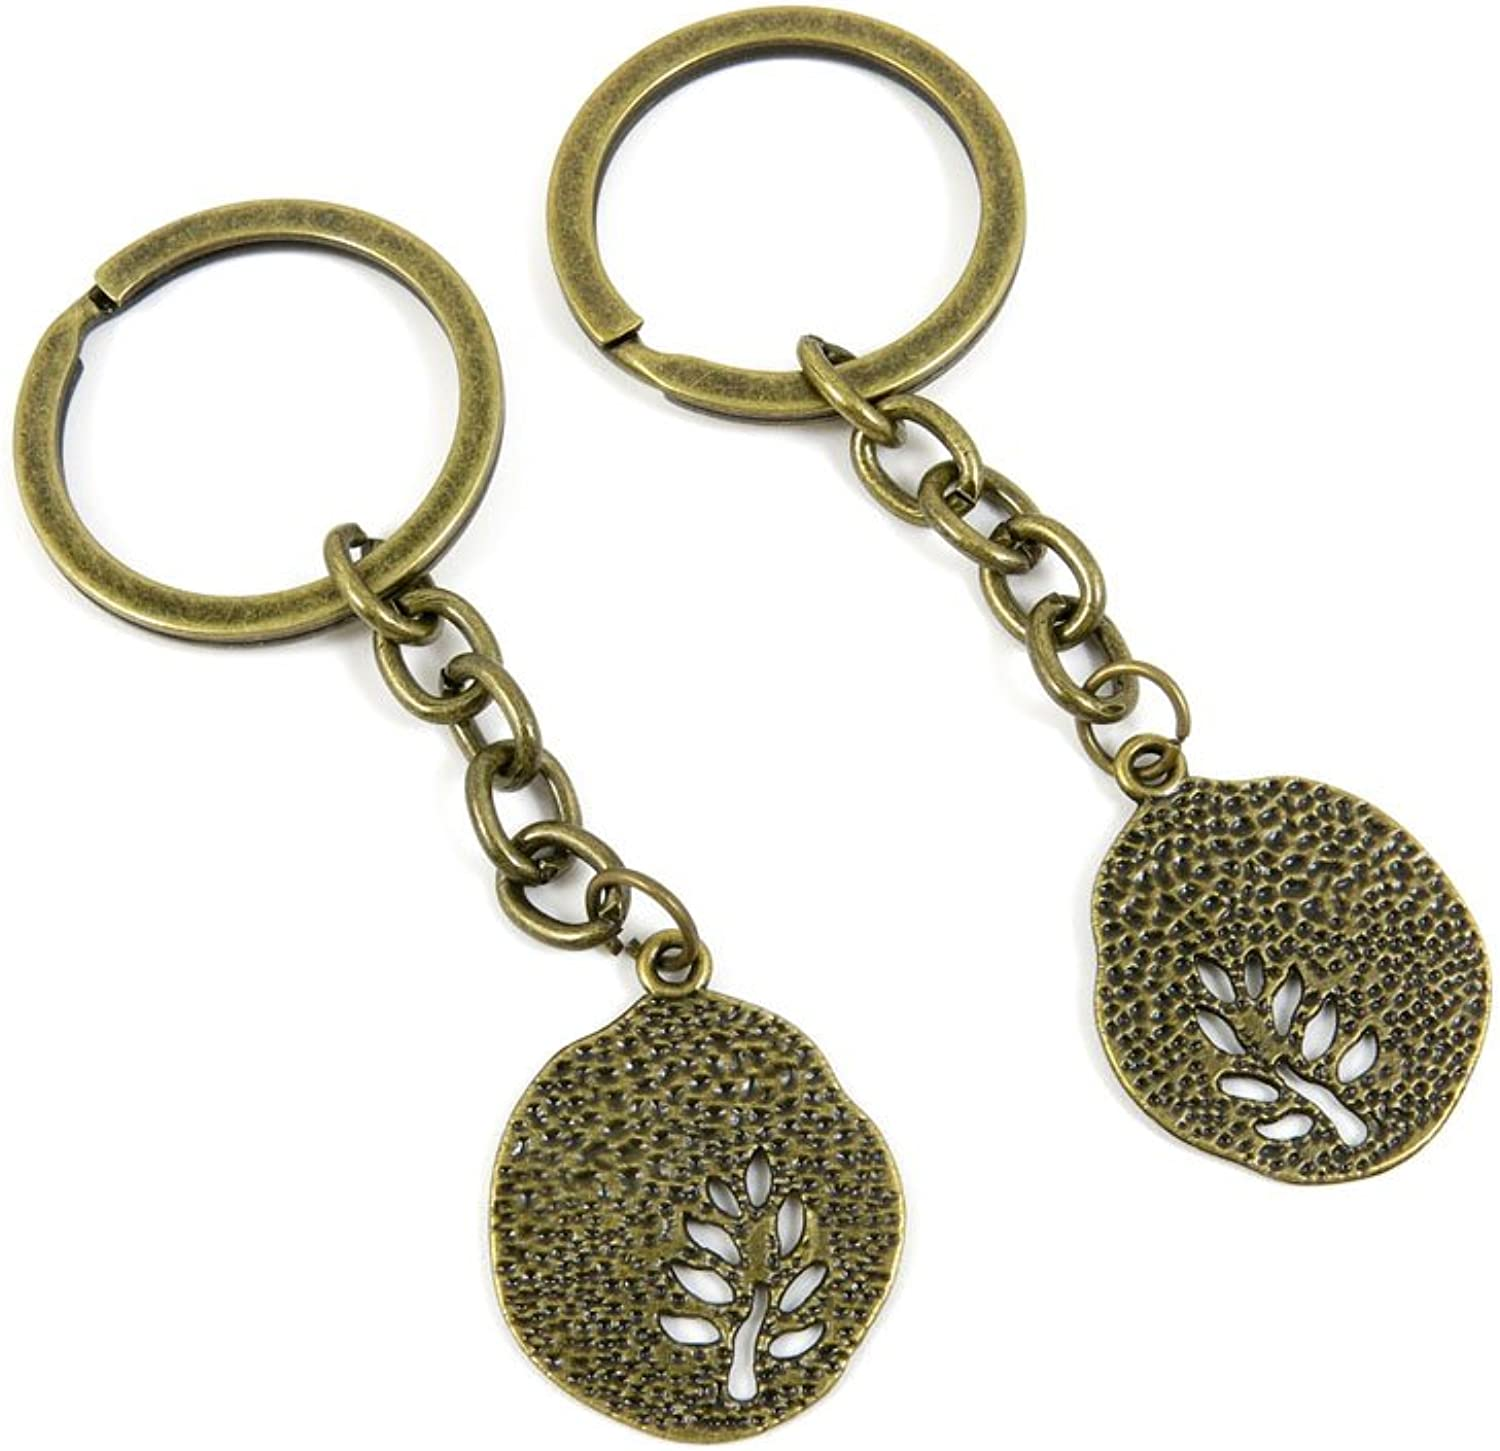 80 PCS Keyring Car Door Key Ring Tag Chain Keychain Wholesale Suppliers Charms Handmade H8BK8 Tree Signs